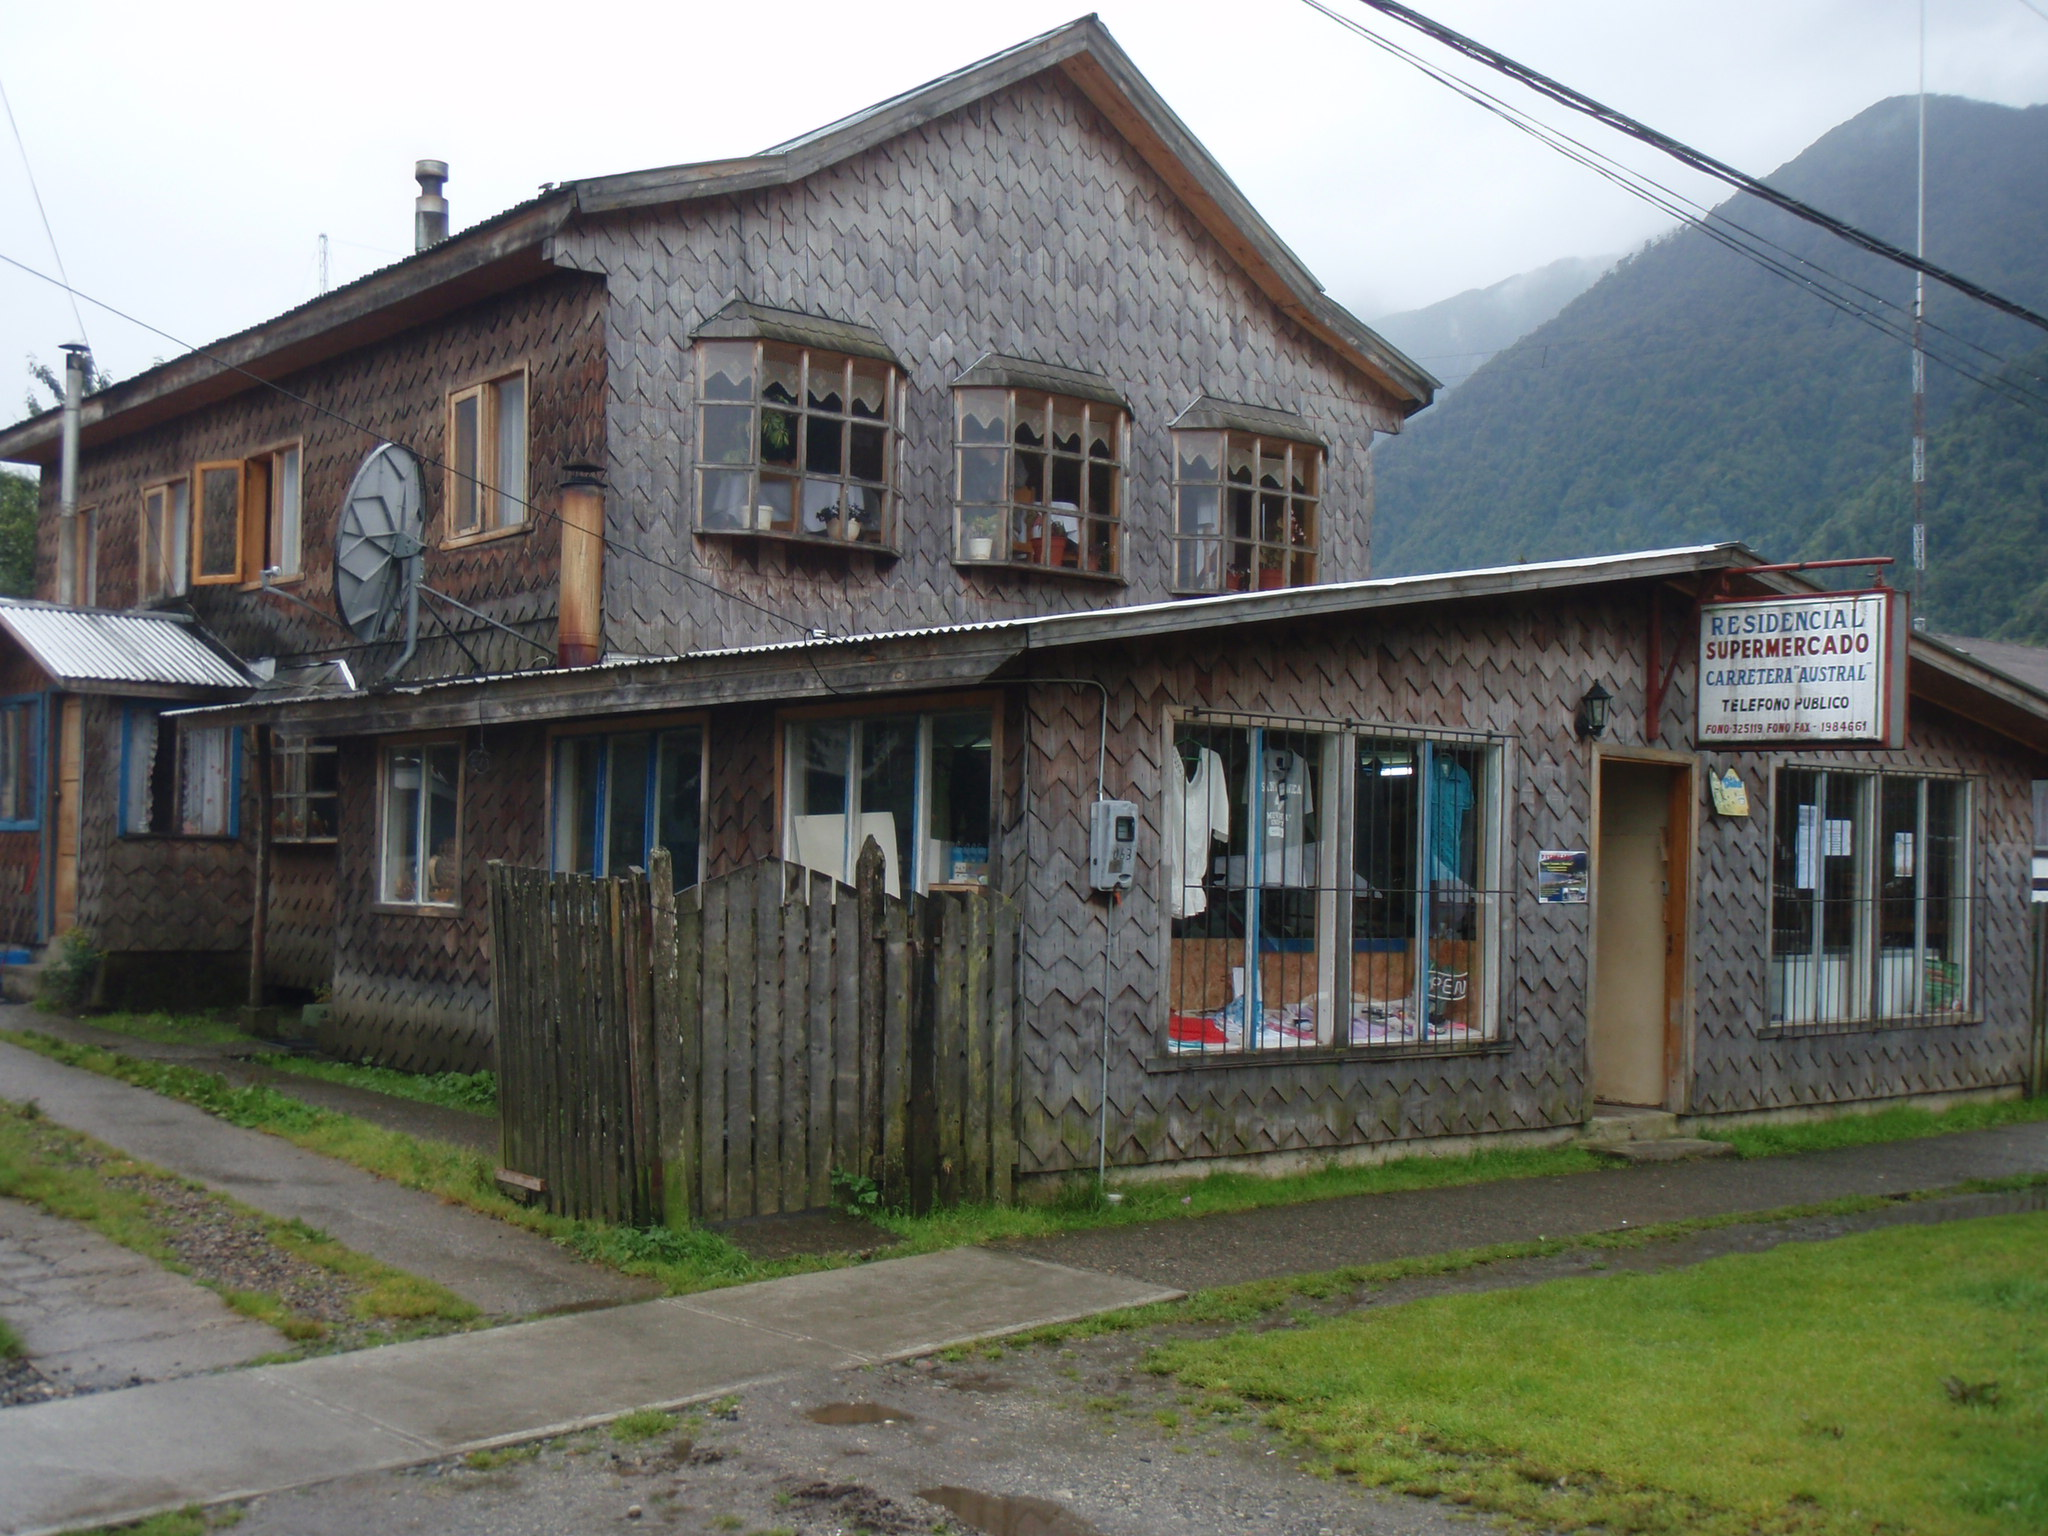 Hostel Carreterra Austral - our warm place to stay the night